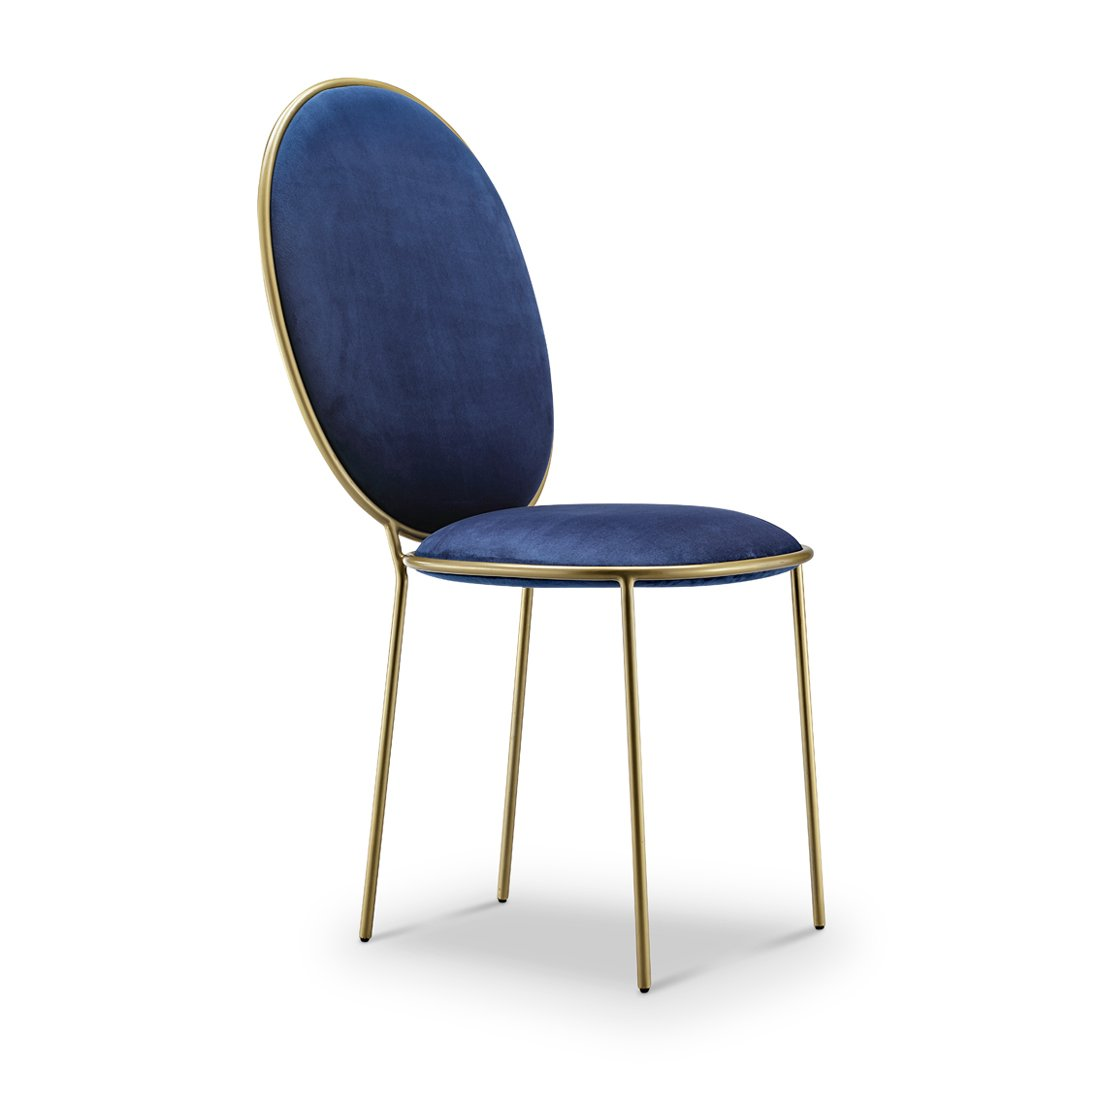 Replica Stay dining chair - blue